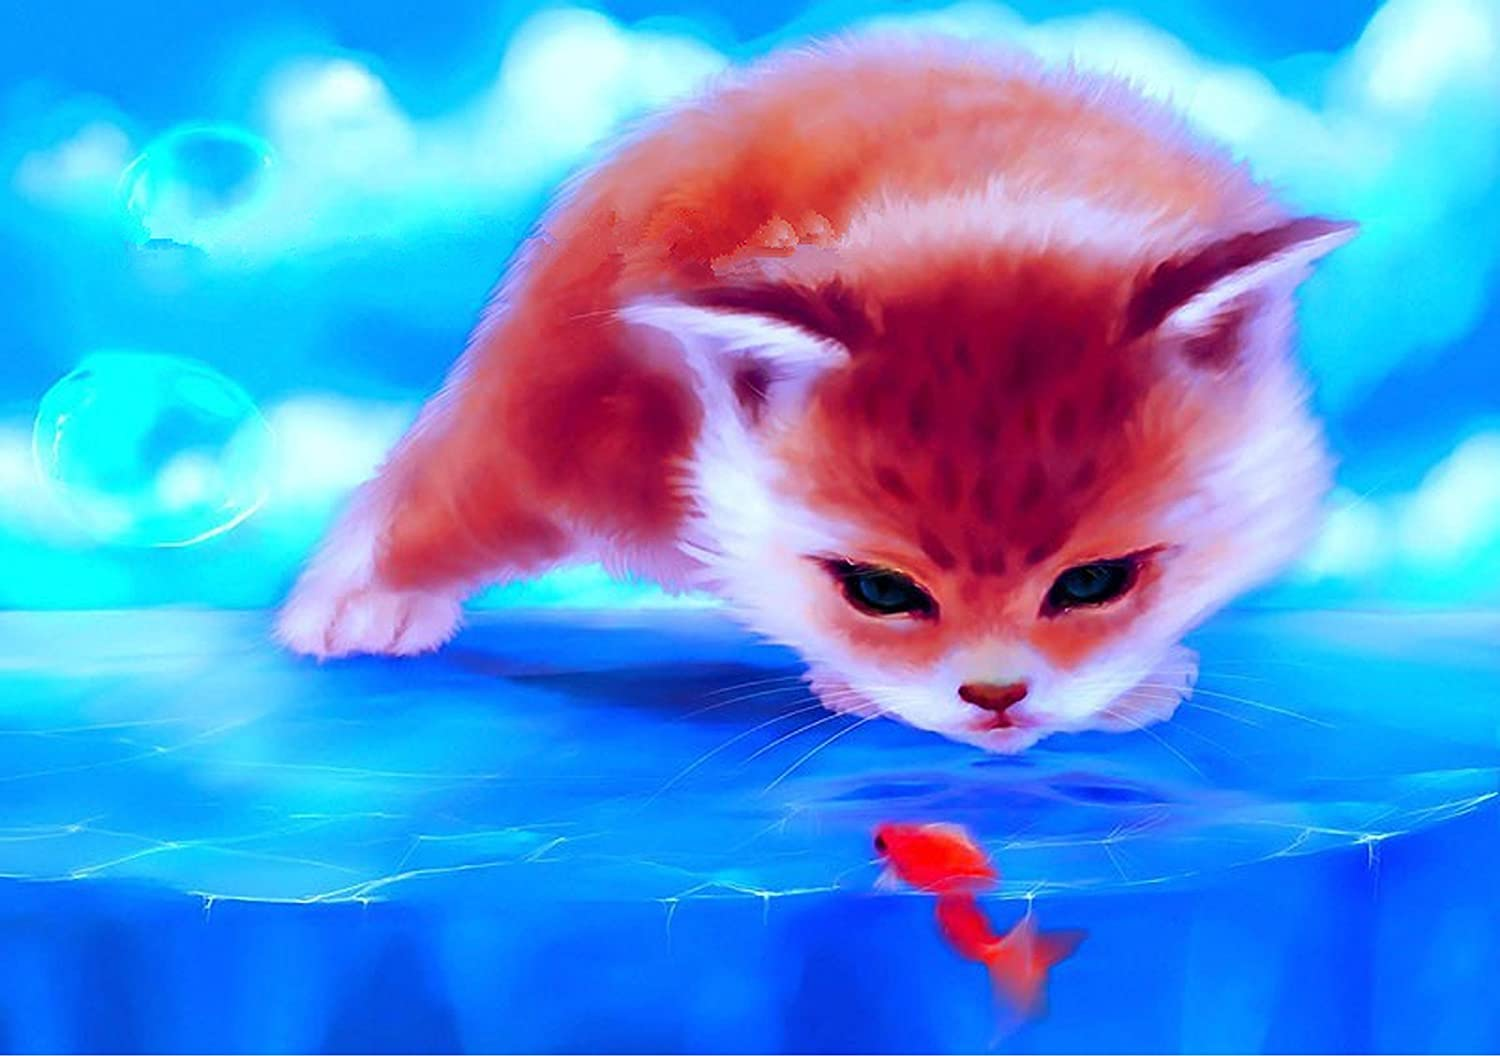 TianMai Hot New DIY 5D Diamond Painting Kit Crystals Diamond Embroidery Rhinestone Painting Pasted Paint by Number Kits Stitch Craft Kit Home Decor Wall Sticker - Red Cat Goldfish, 33x25cm